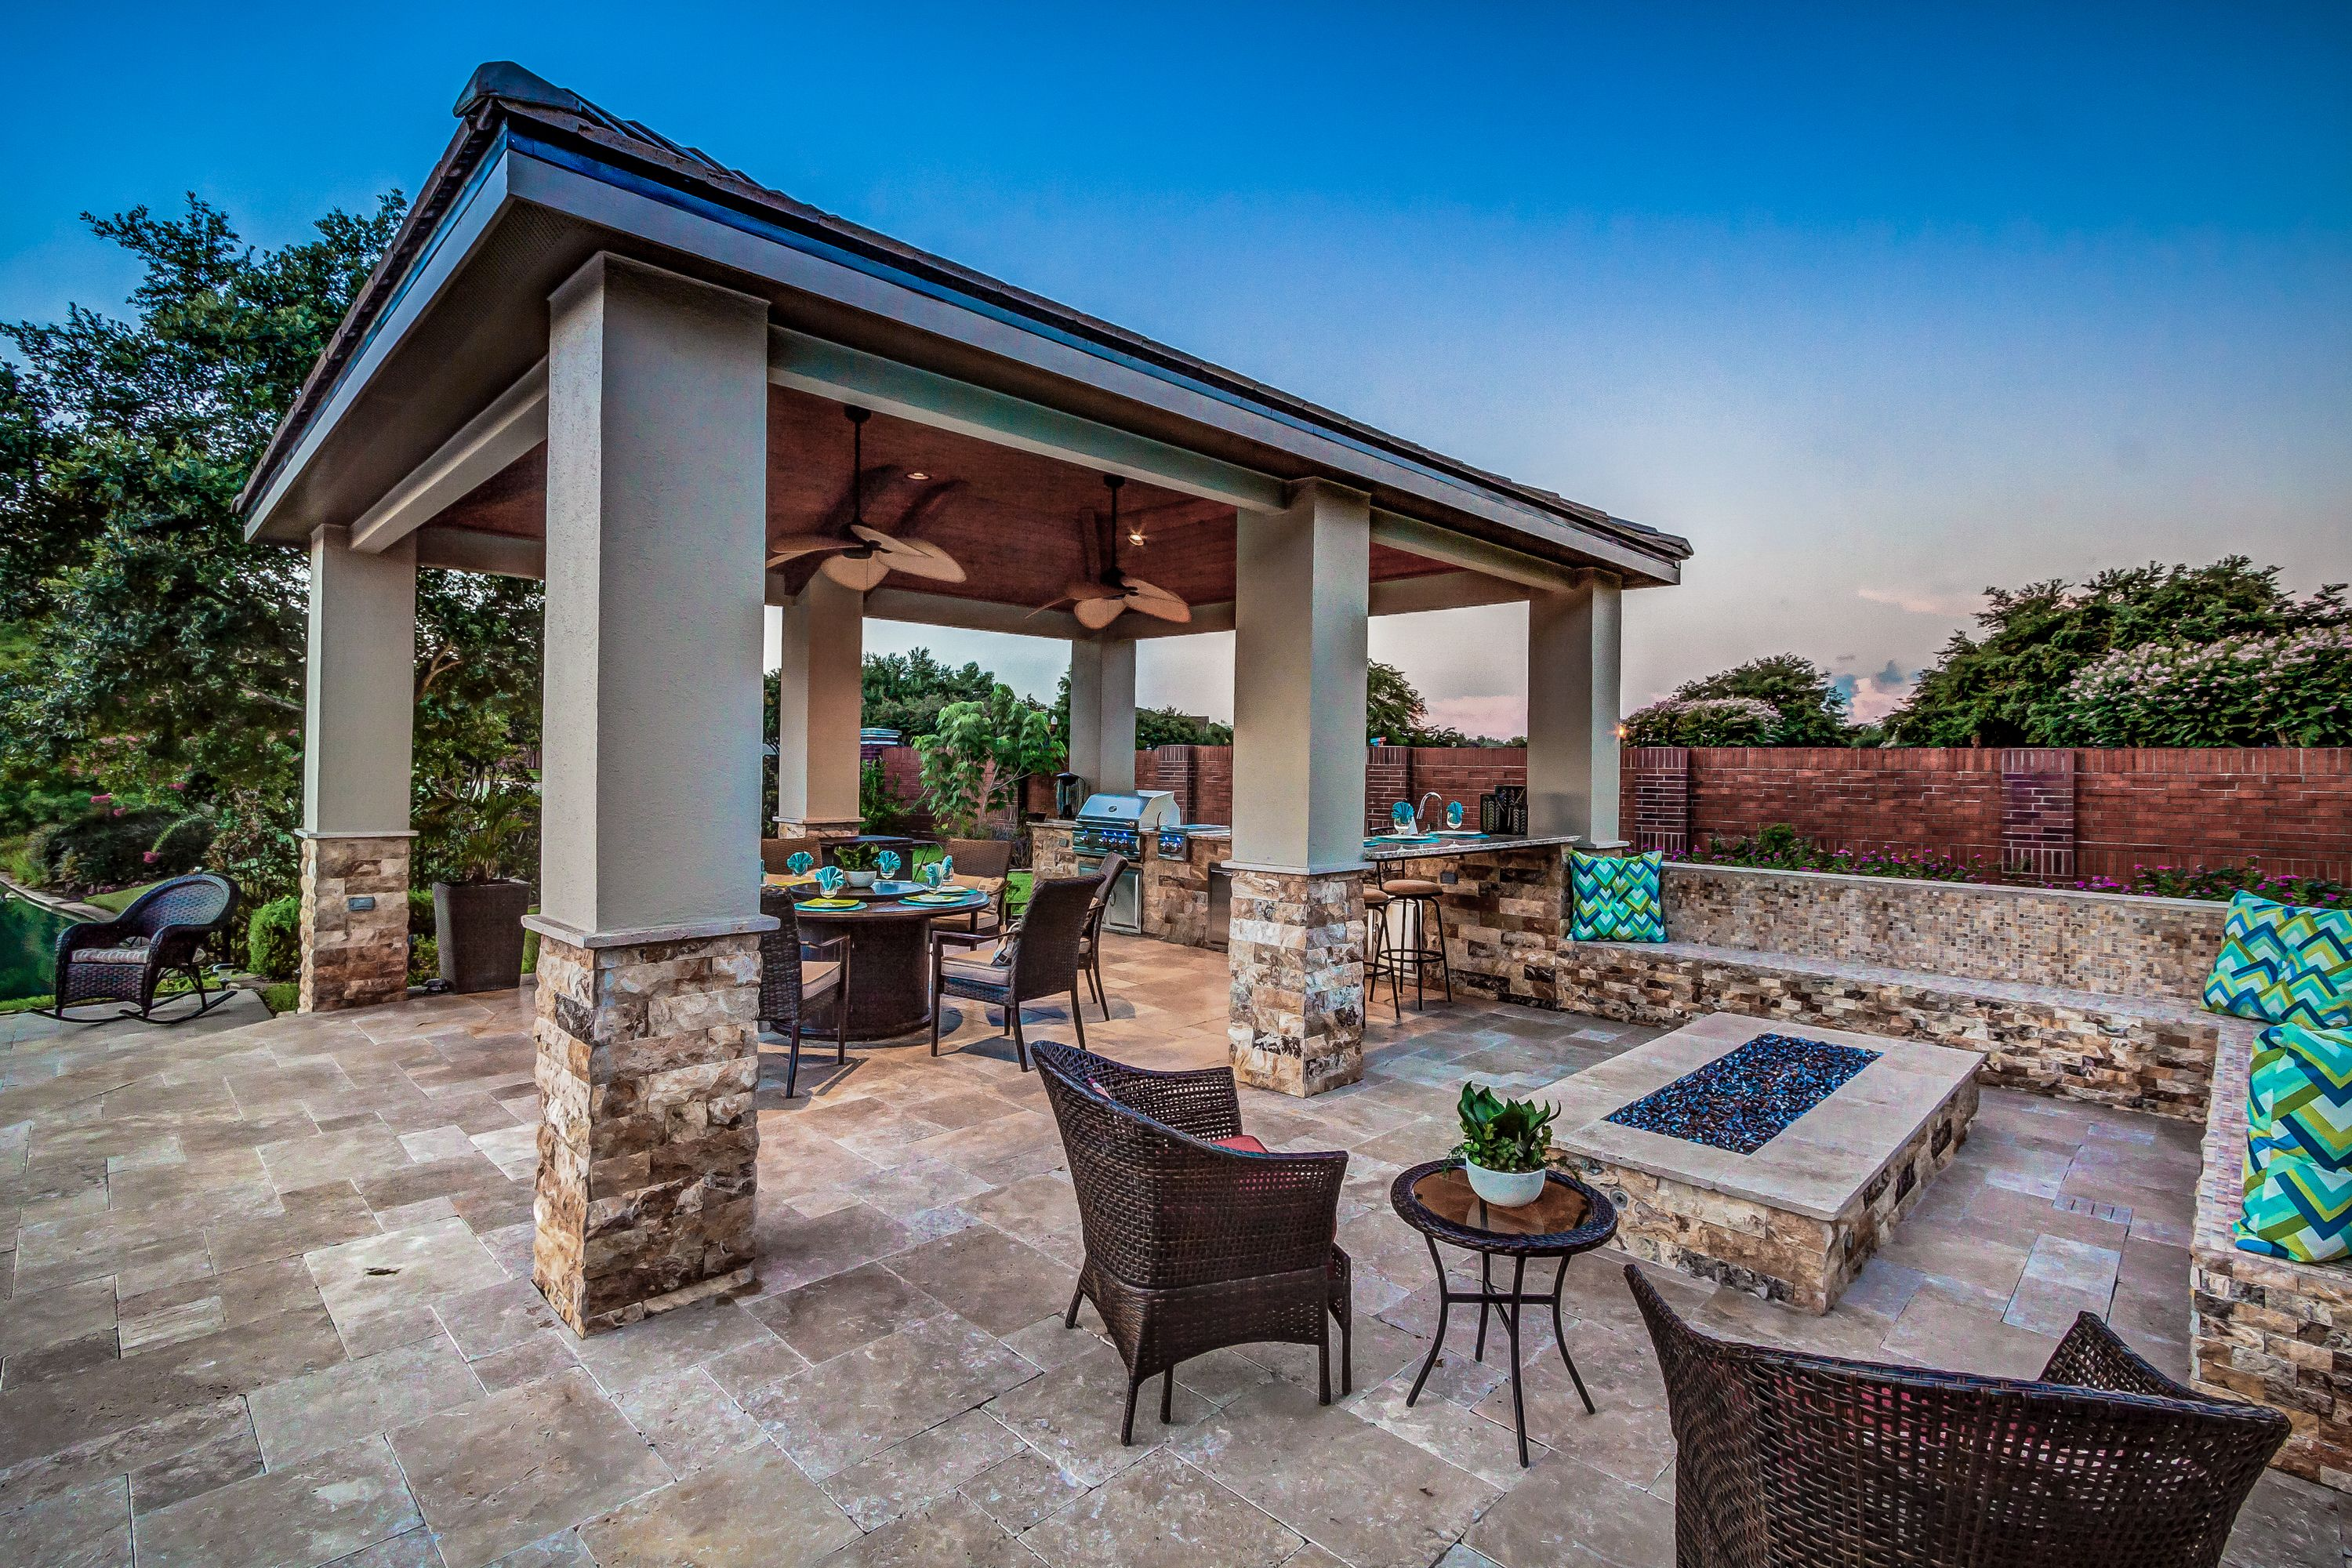 Our Custom Outdoor Kitchens Are Designed And Built To Last Platinum Pools Uses Only The Best Materia Build Outdoor Kitchen Custom Swimming Pool Outdoor Living